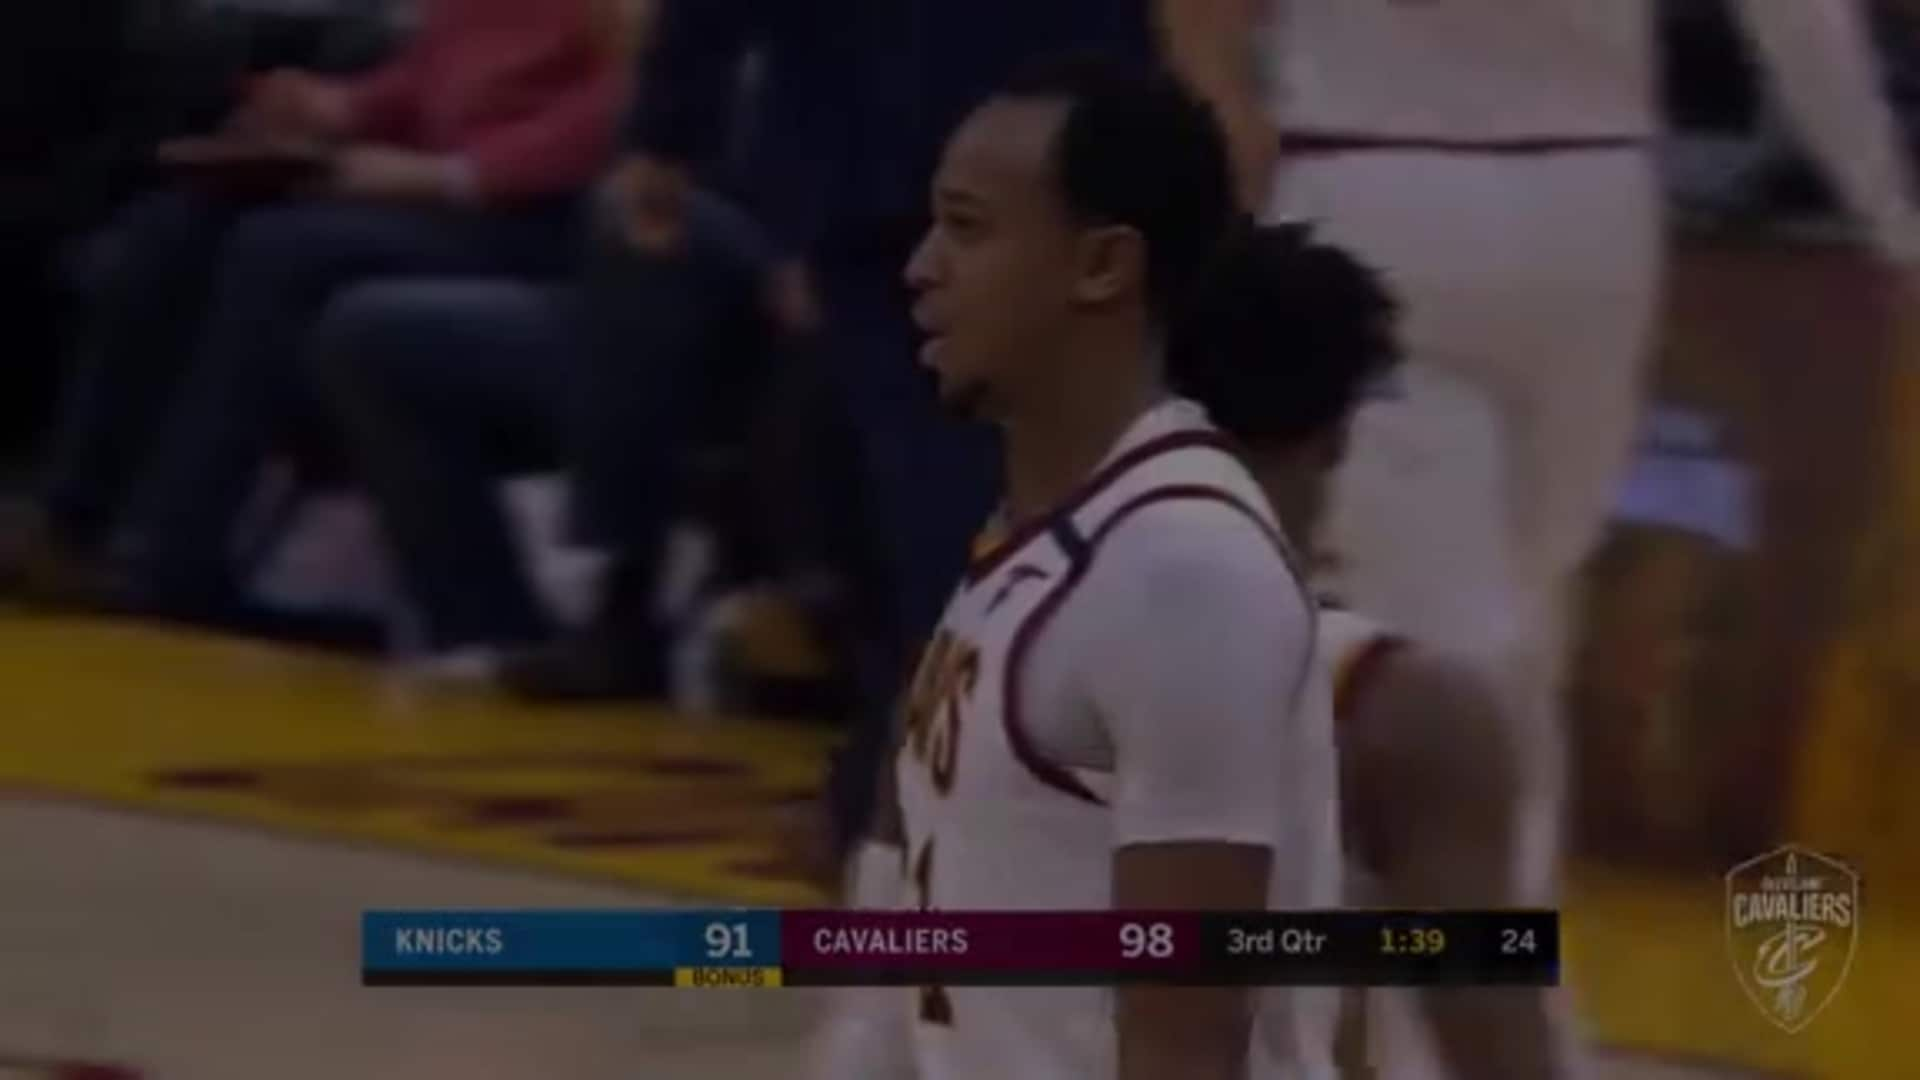 John Henson Scores, Gets Fouled in the Process